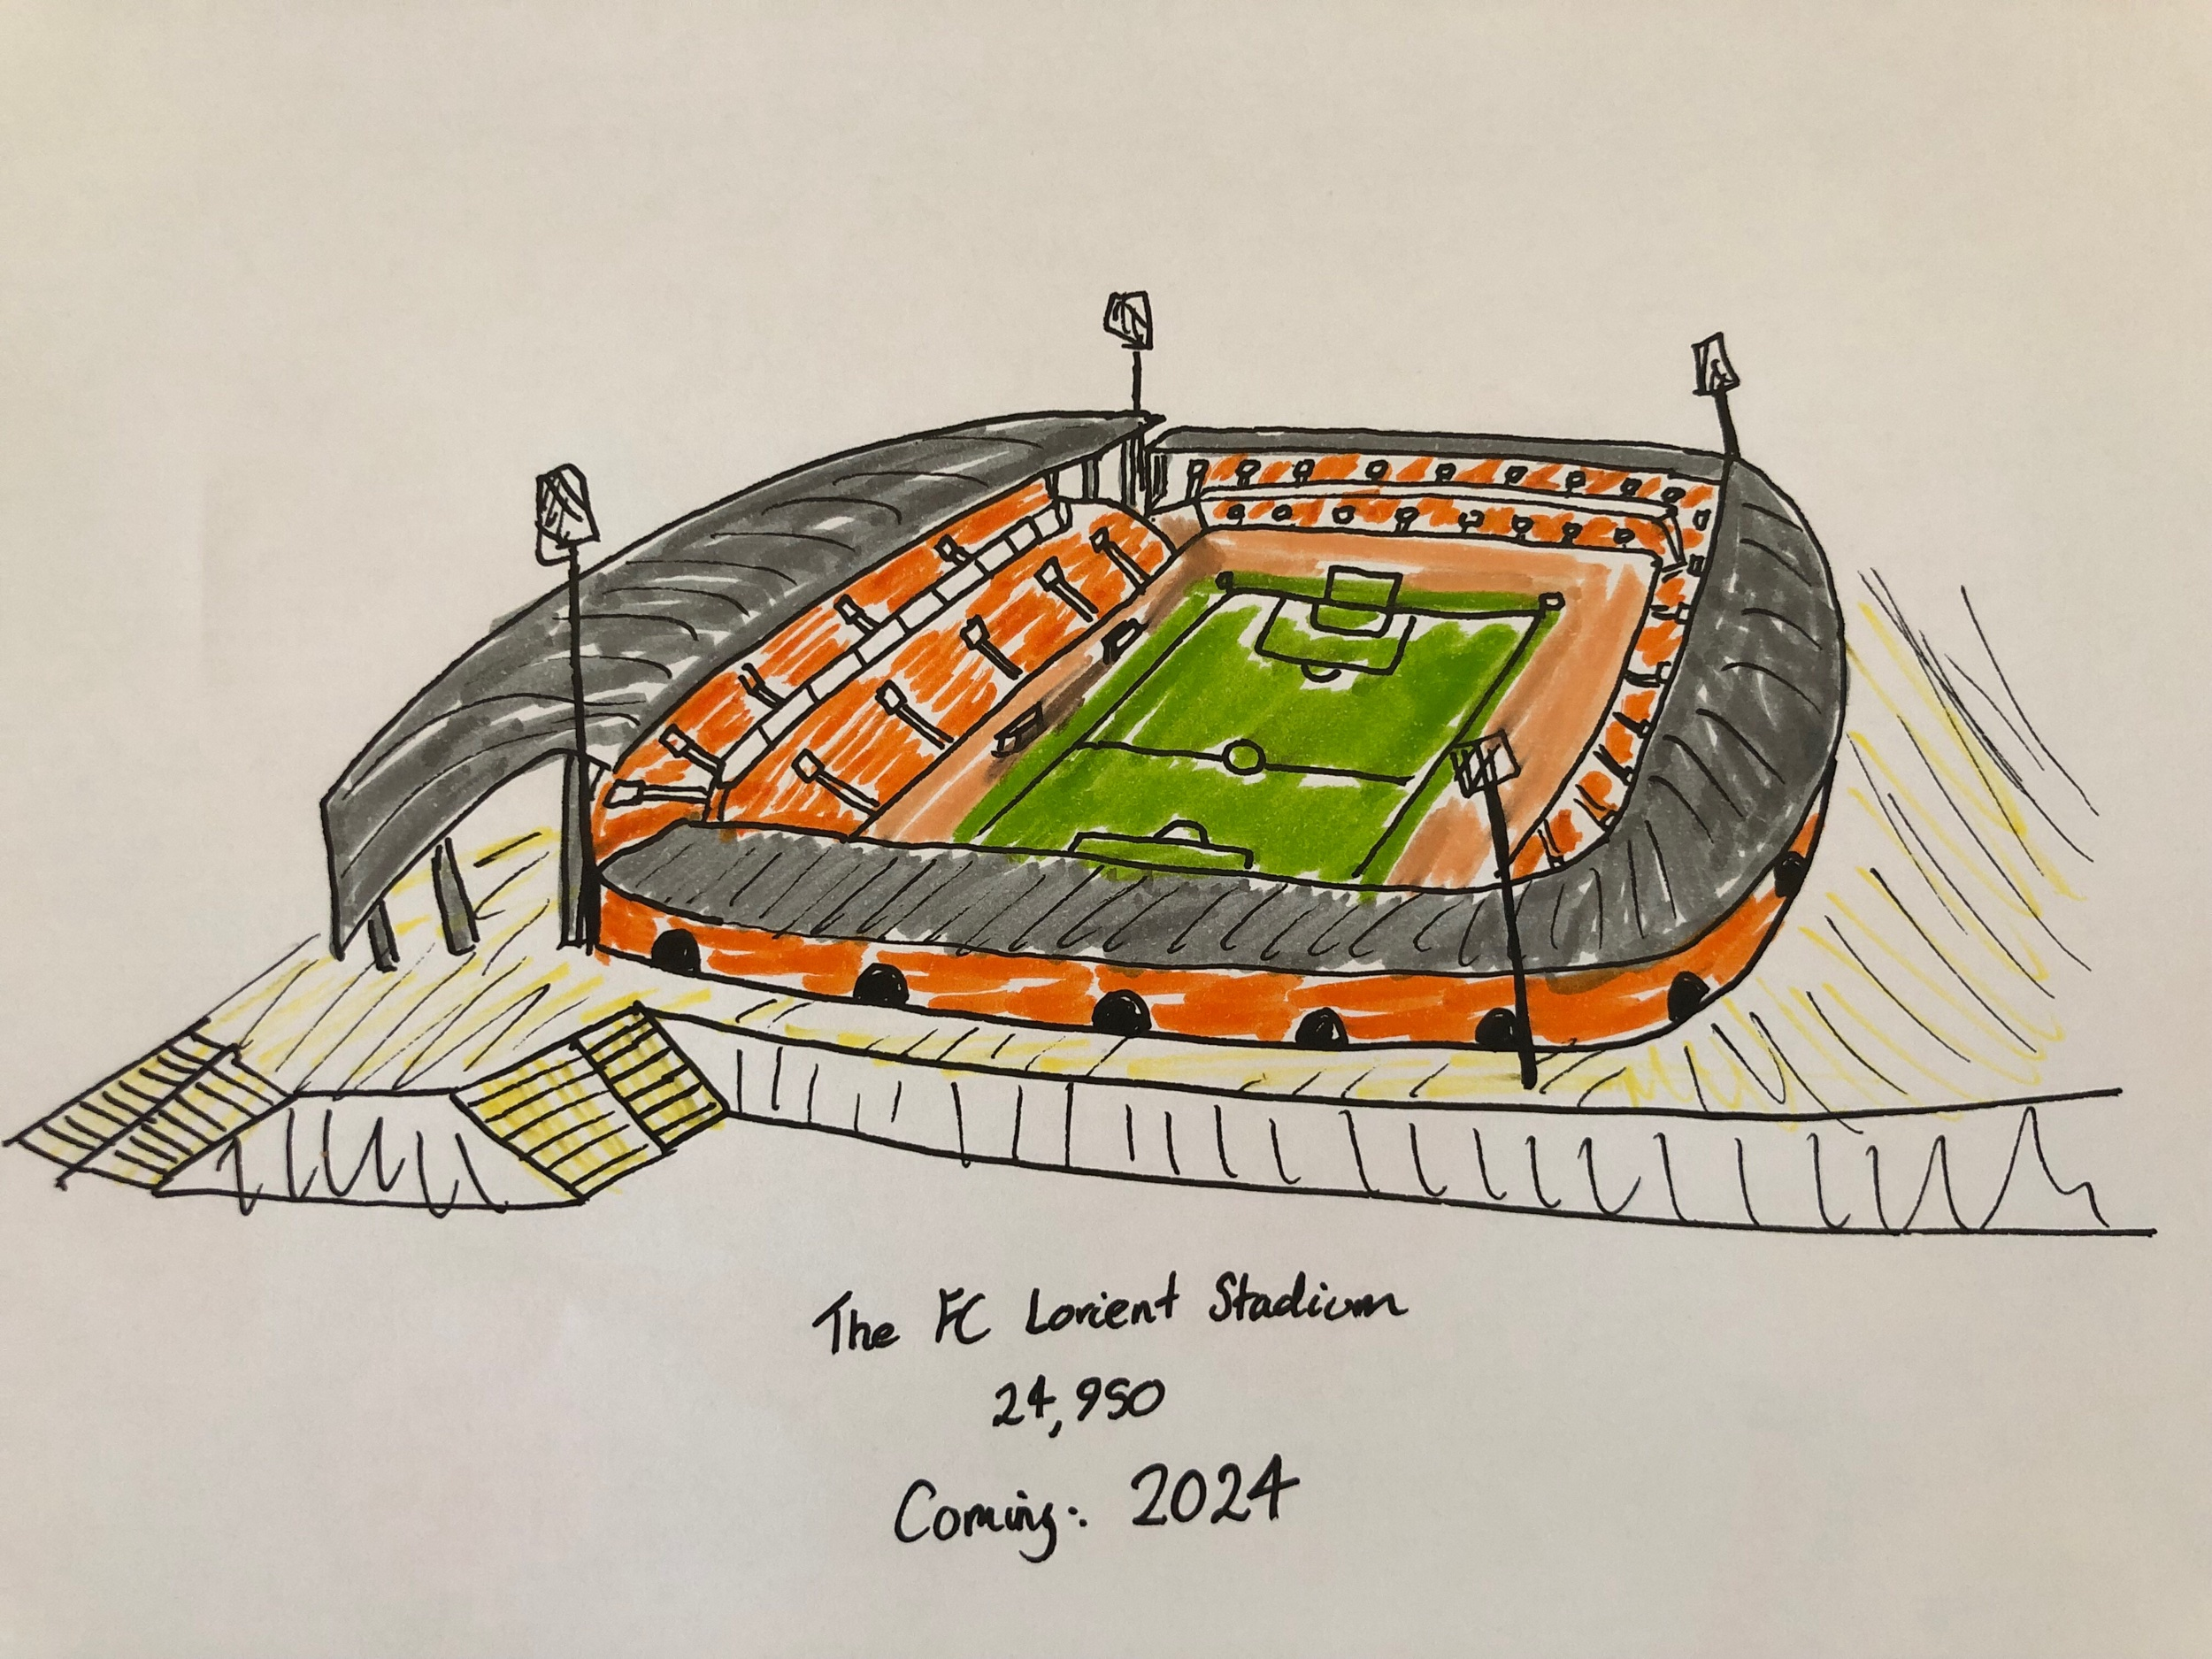 An Artist's impression of the 25,000 capacity 'FC Lorient Stadium'.